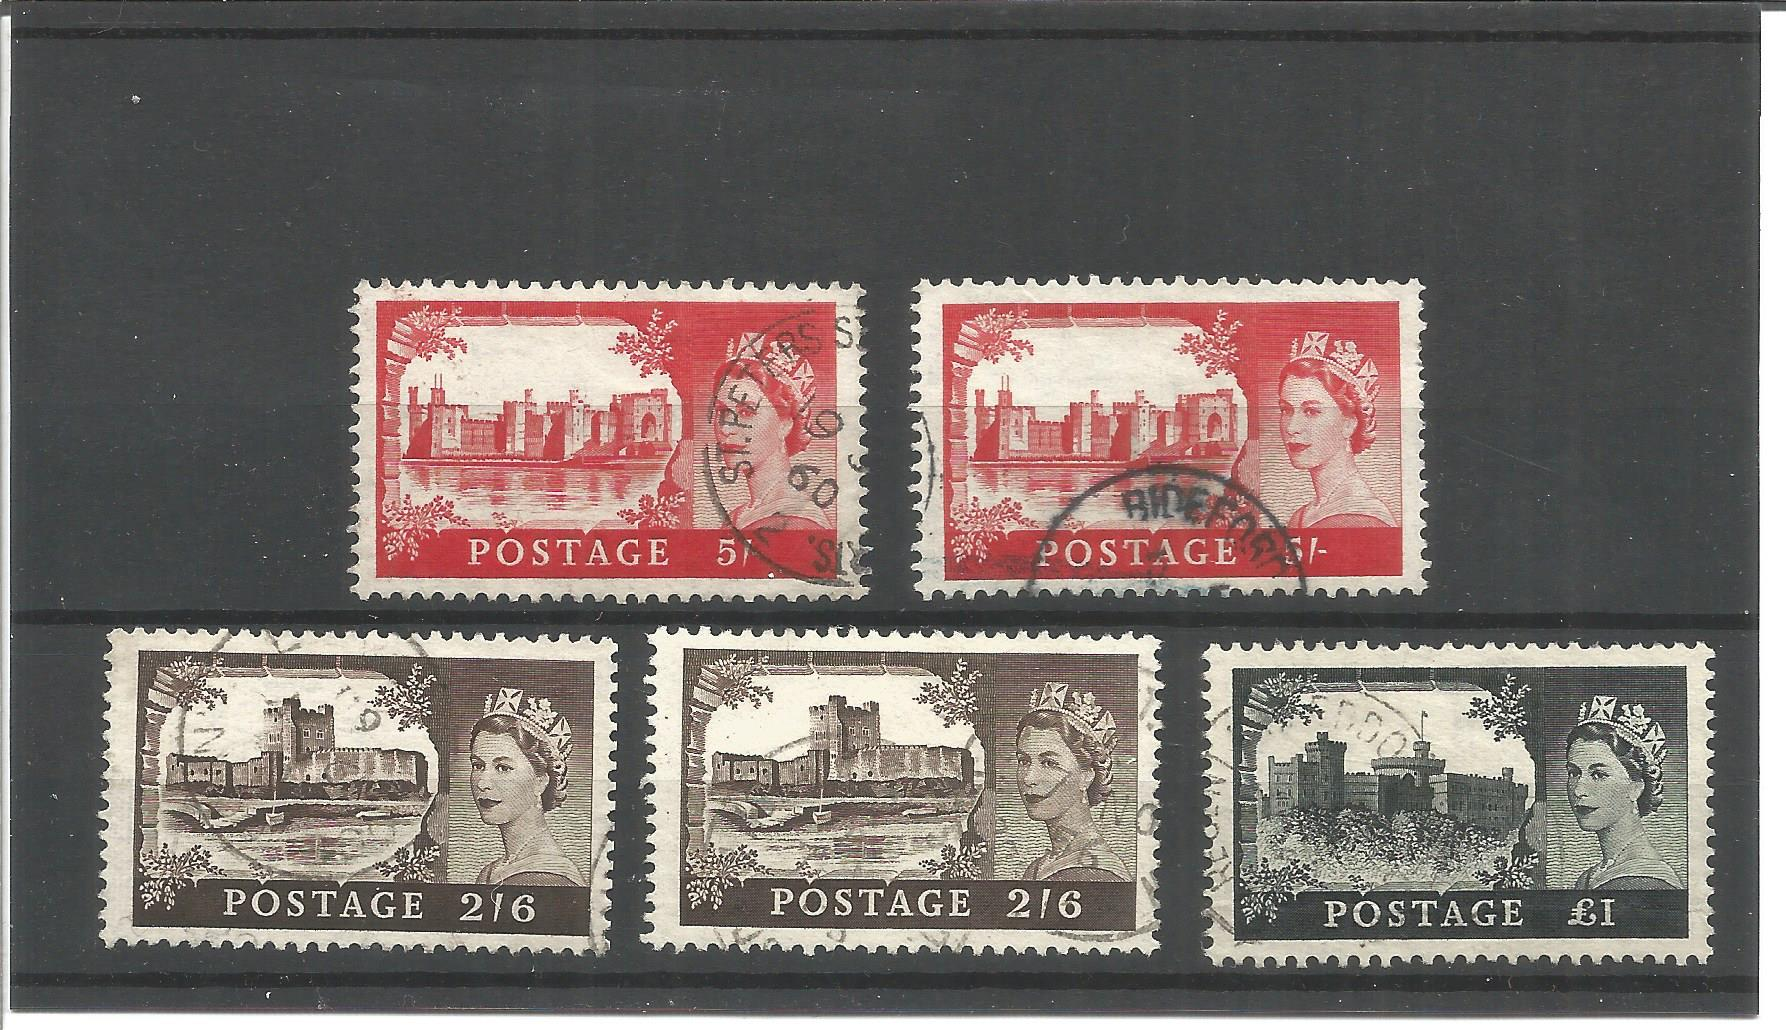 GB stamp collection on stock card. 5 stamps. SG595a (2), SG760(2) and SG762. Good condition. We